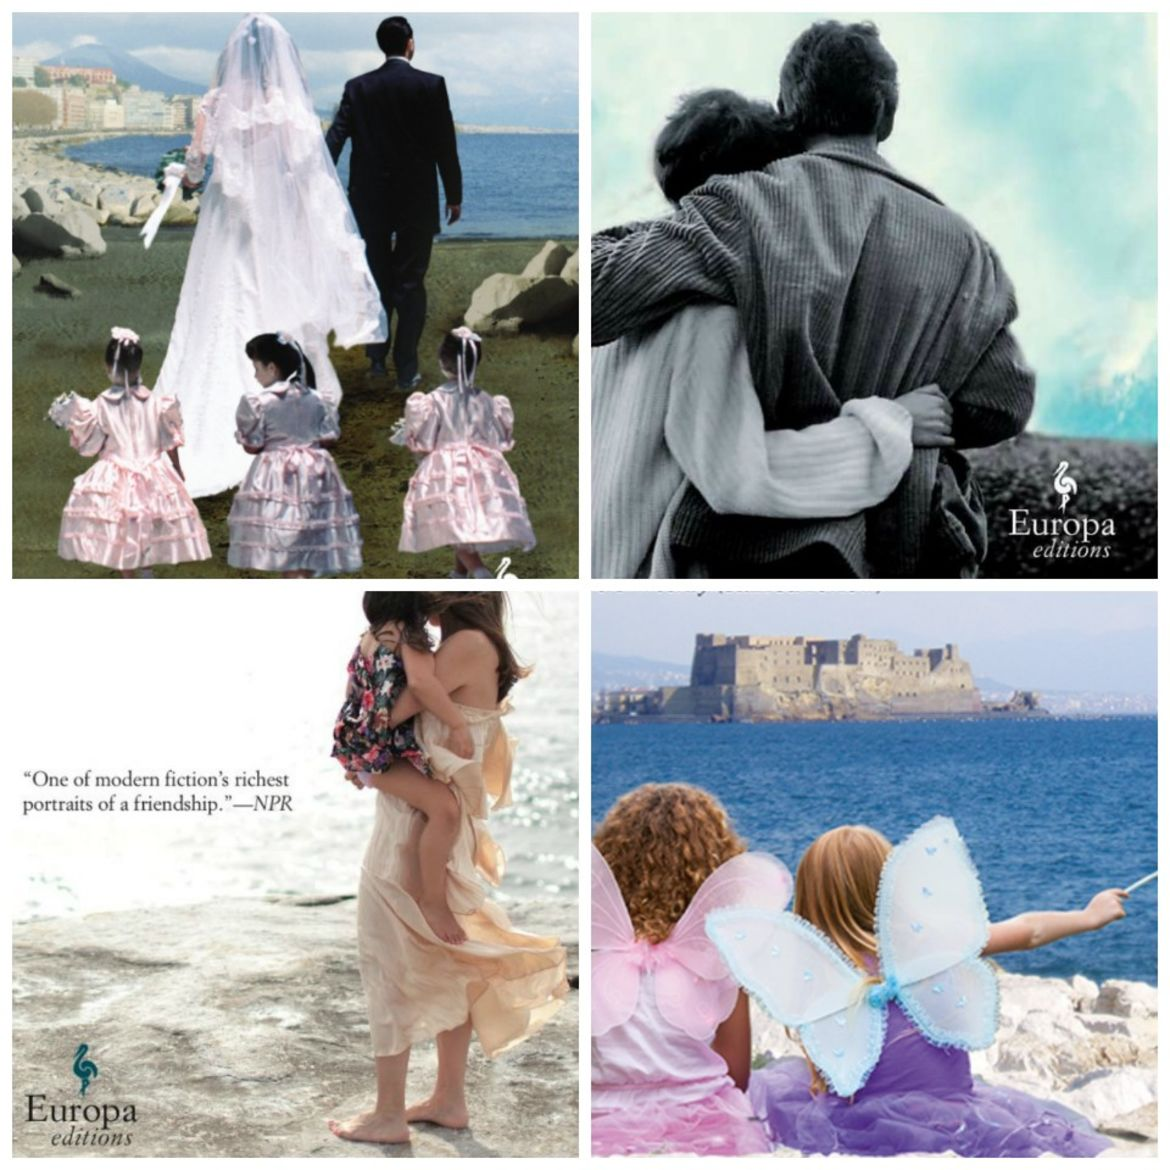 Cover Photo: details from cover of The Neopolitan Novels